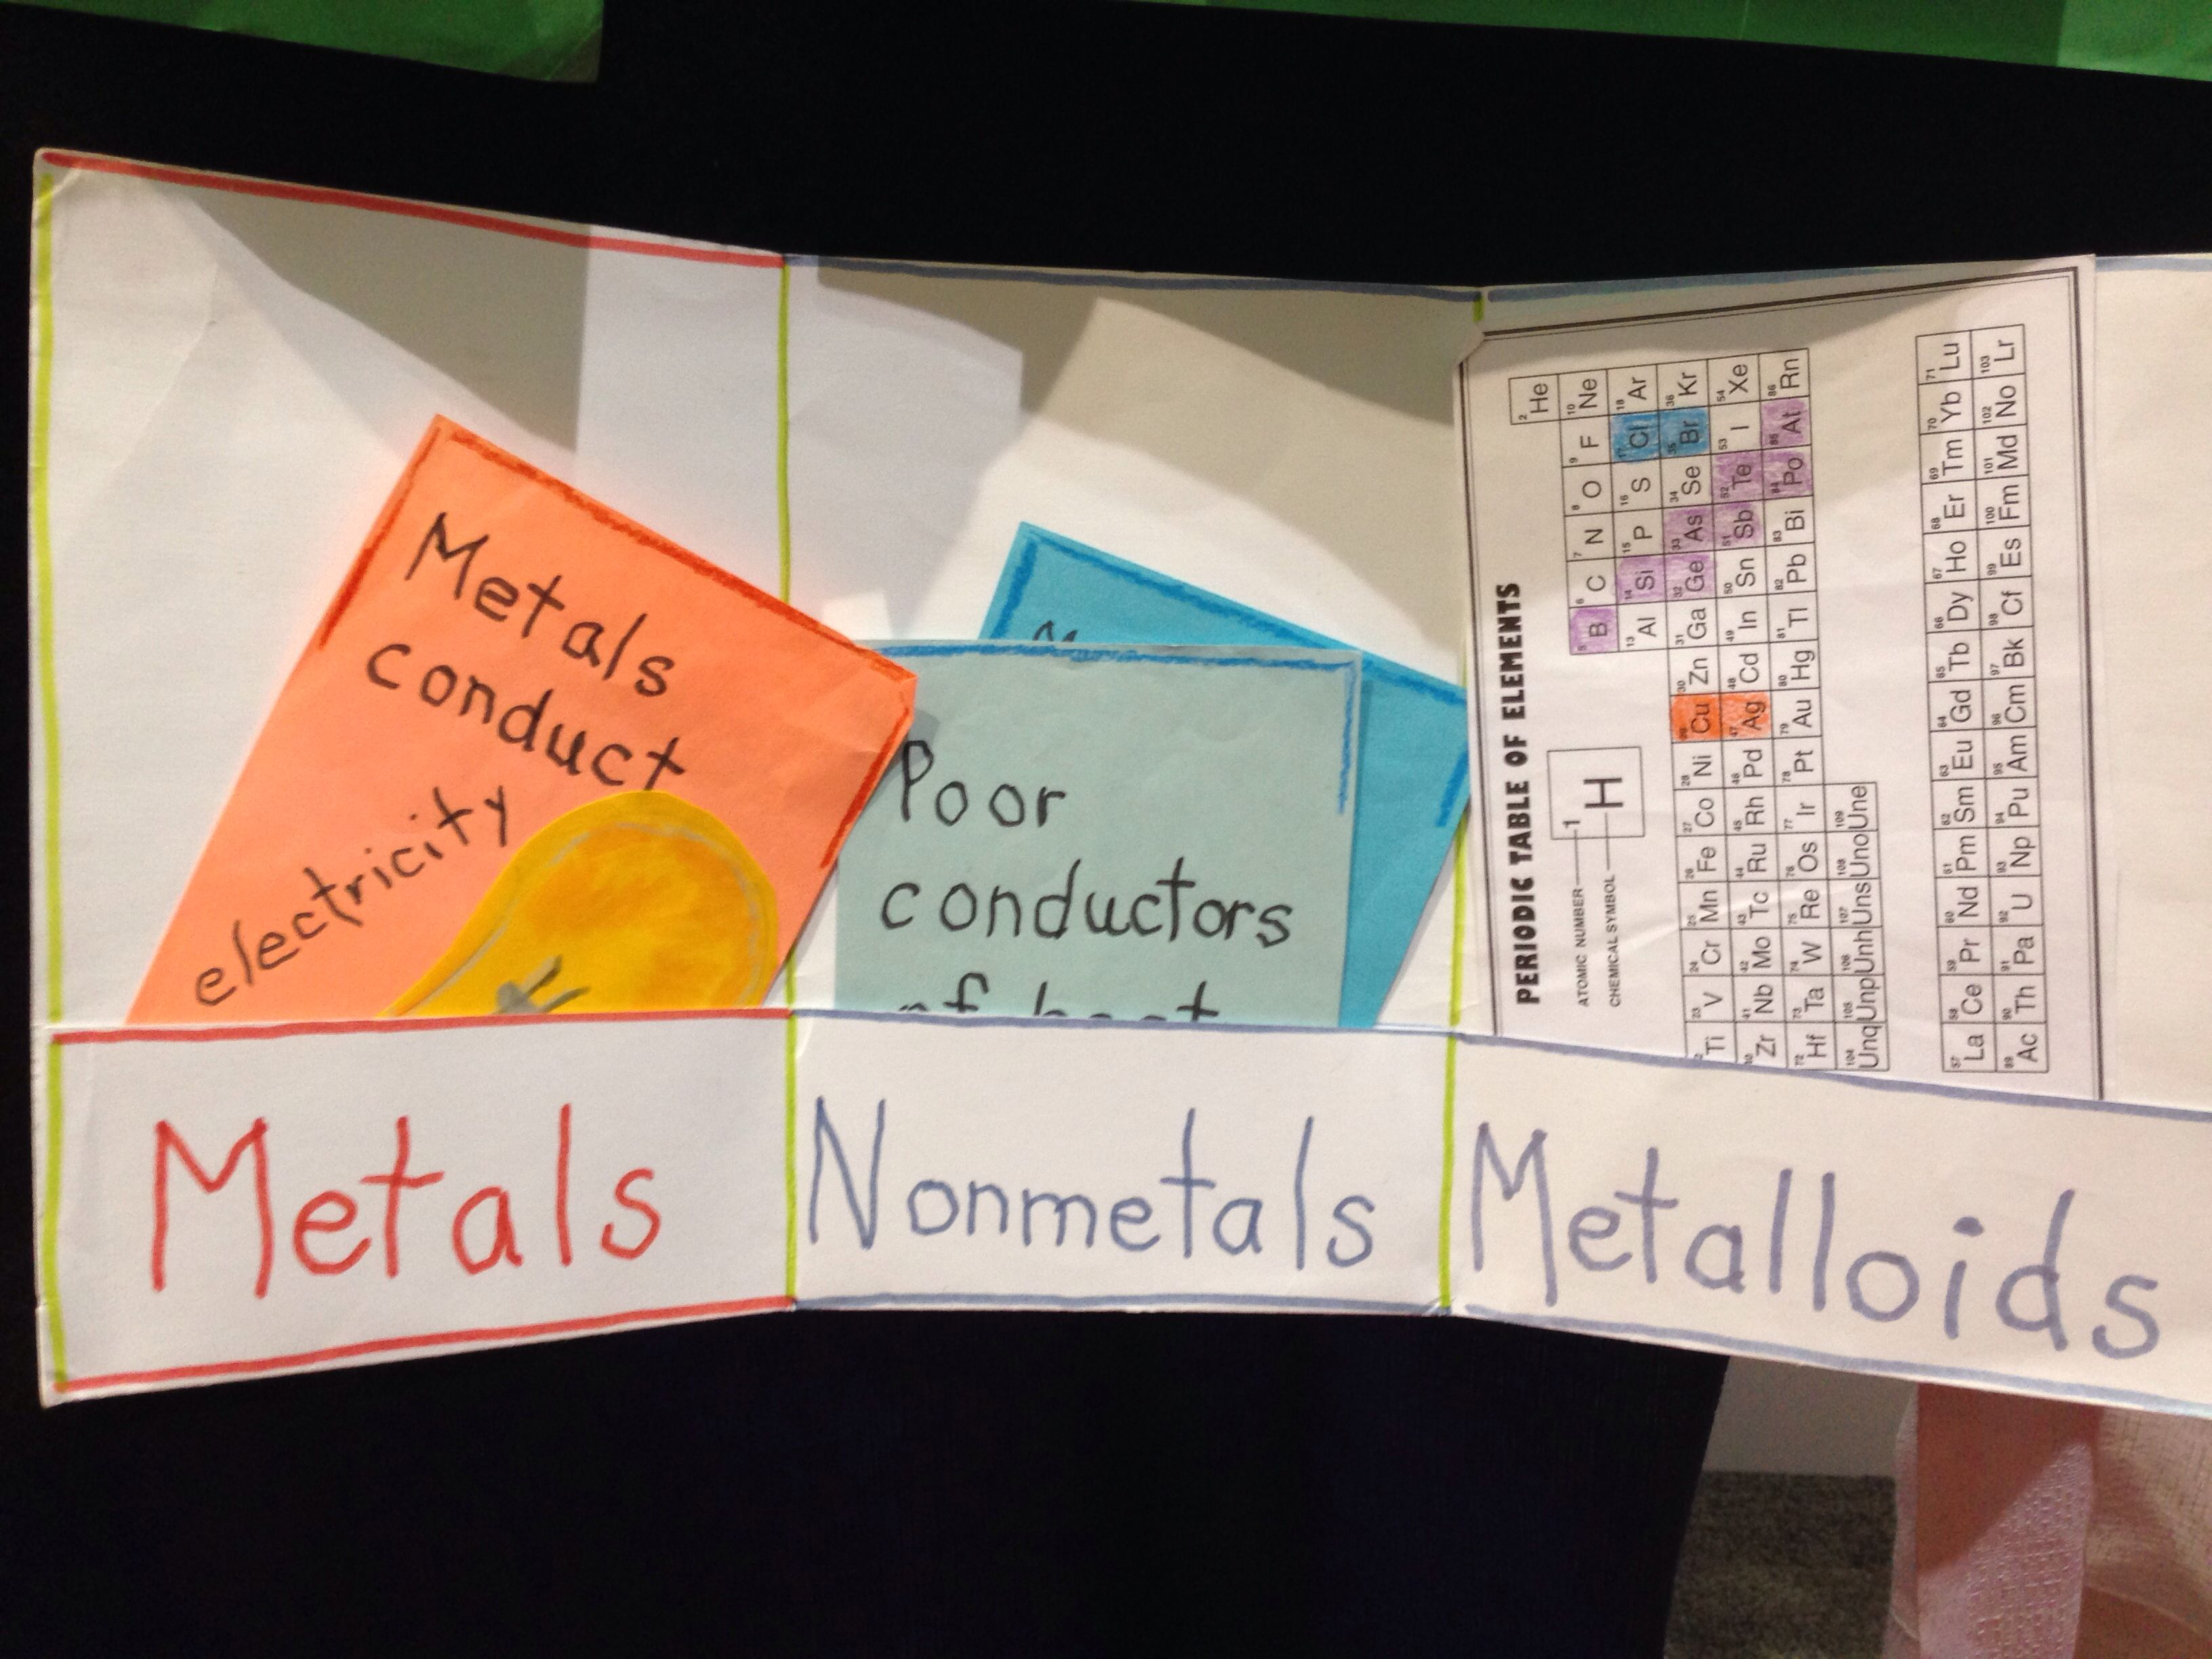 Metals non metals and metalloids card sort foldable chemistry metals non metals and metalloids card sort foldable biocorpaavc Images